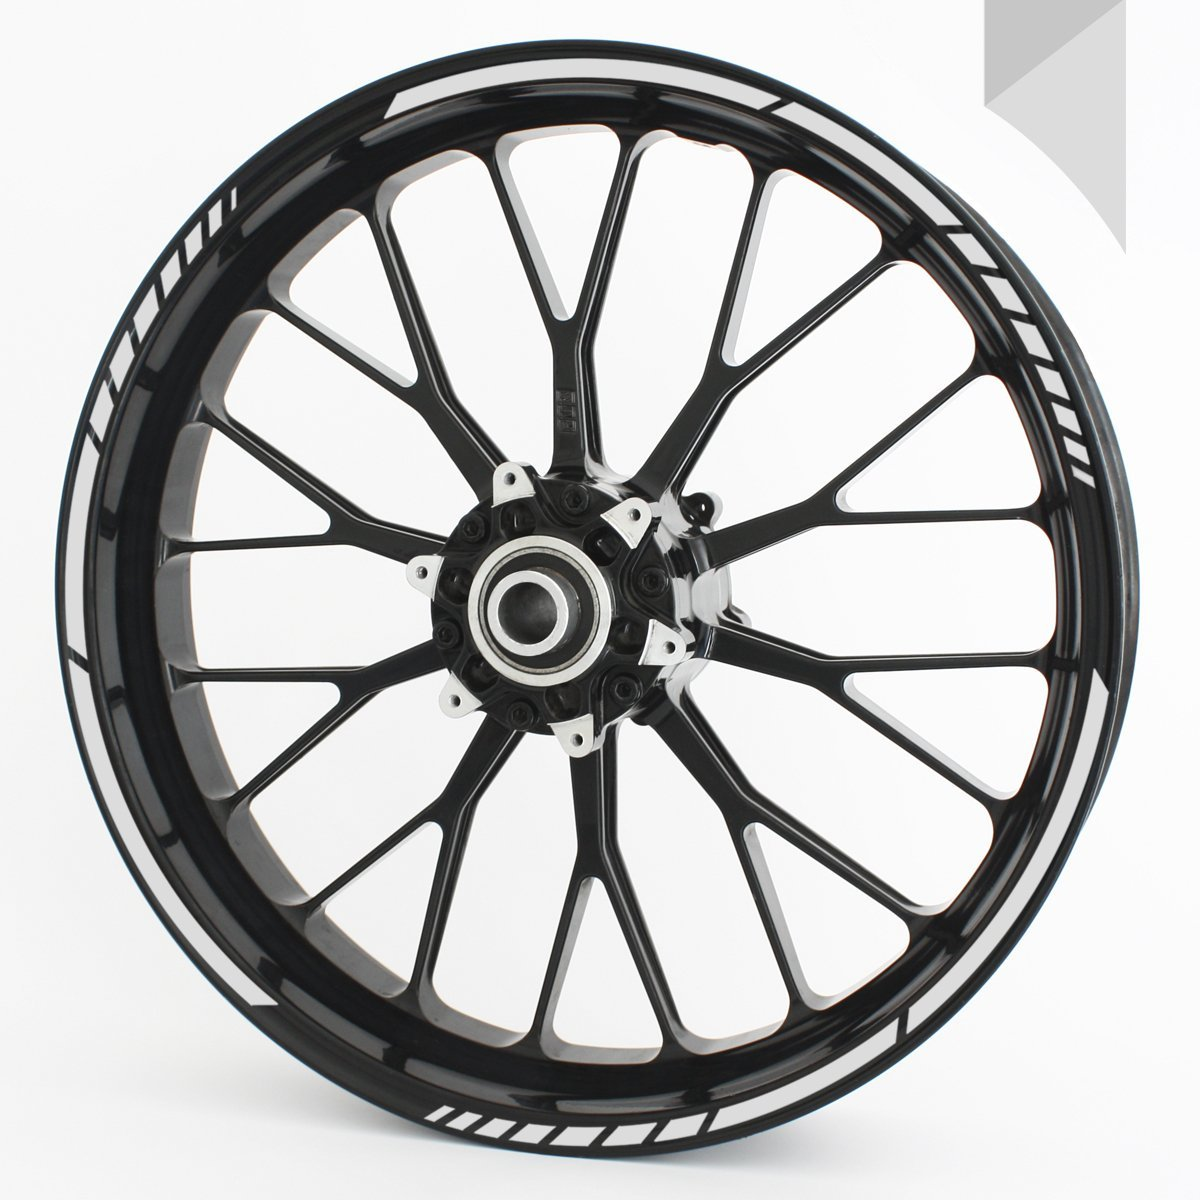 16 17 18 and 19 Motorcycle /& Car Wheels GREY colour selectable Wandkings GP wheel rim sticker for 15